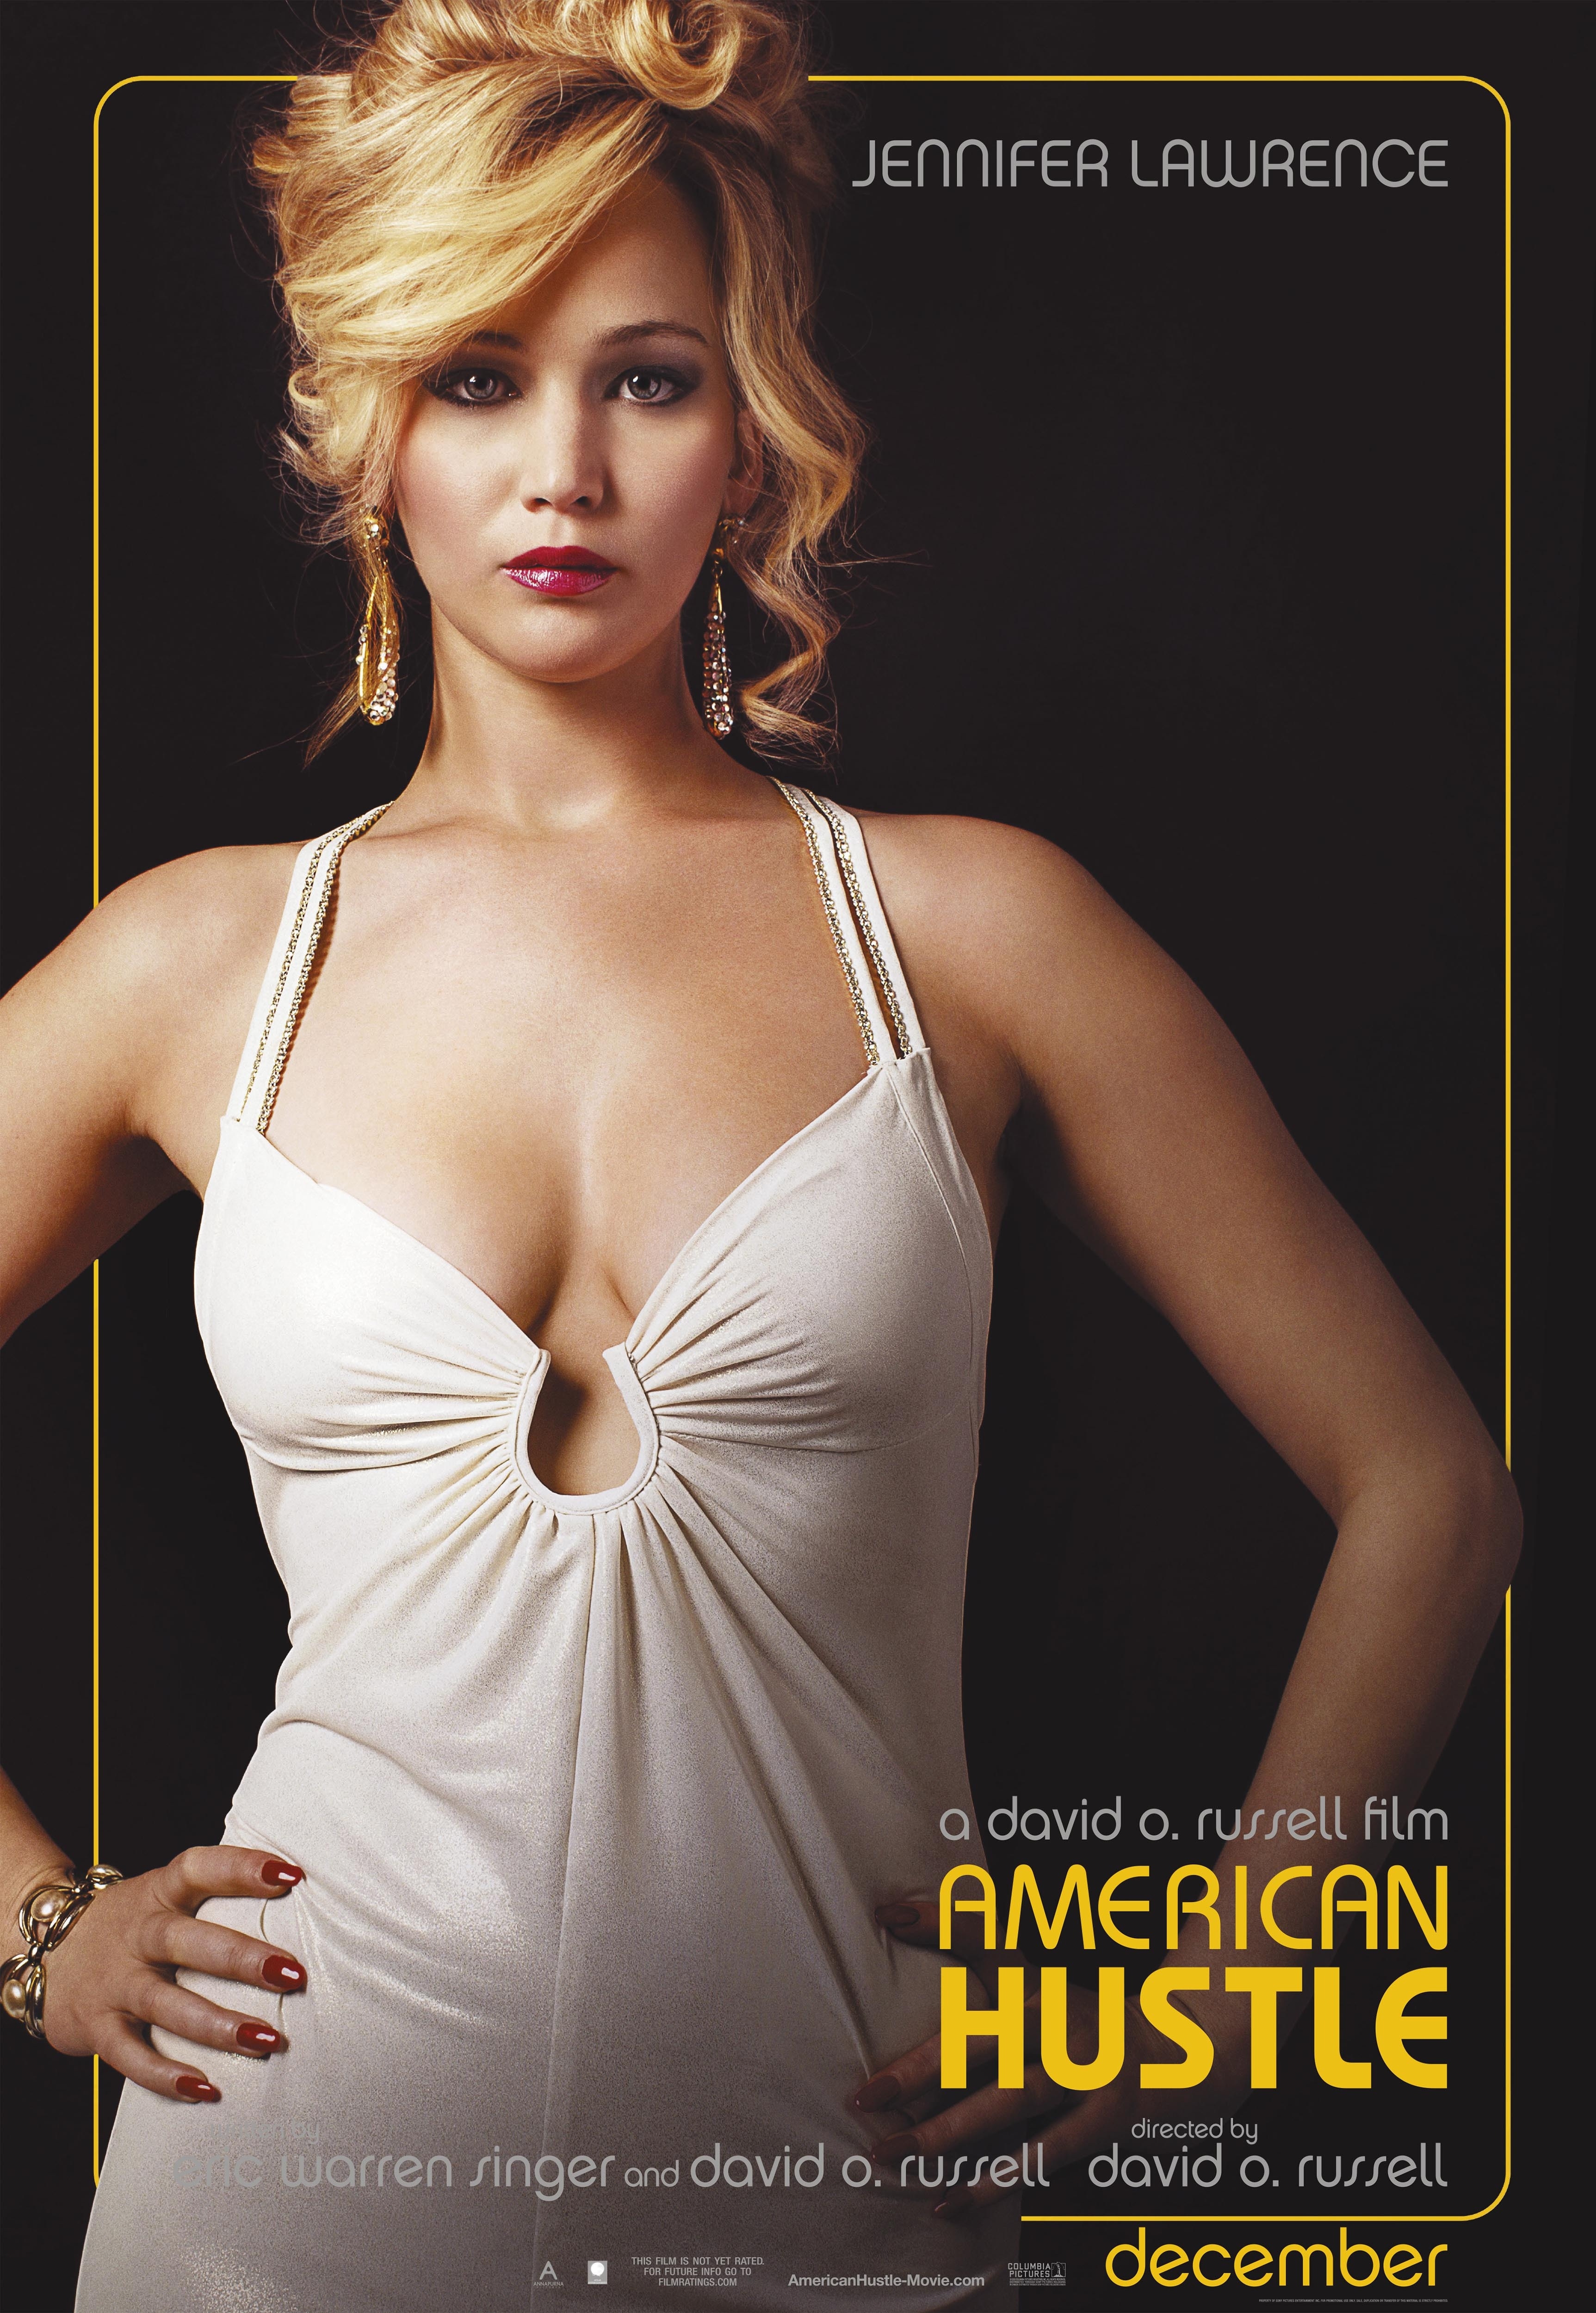 """Rosalyn Rosenfield's shimmering white dress, from David O. Russell's """"American Hustle,"""" 2013. Designed by Oscar(R)-nominated costume designer, Michael Wilkinson. (Photo: Business Wire)"""